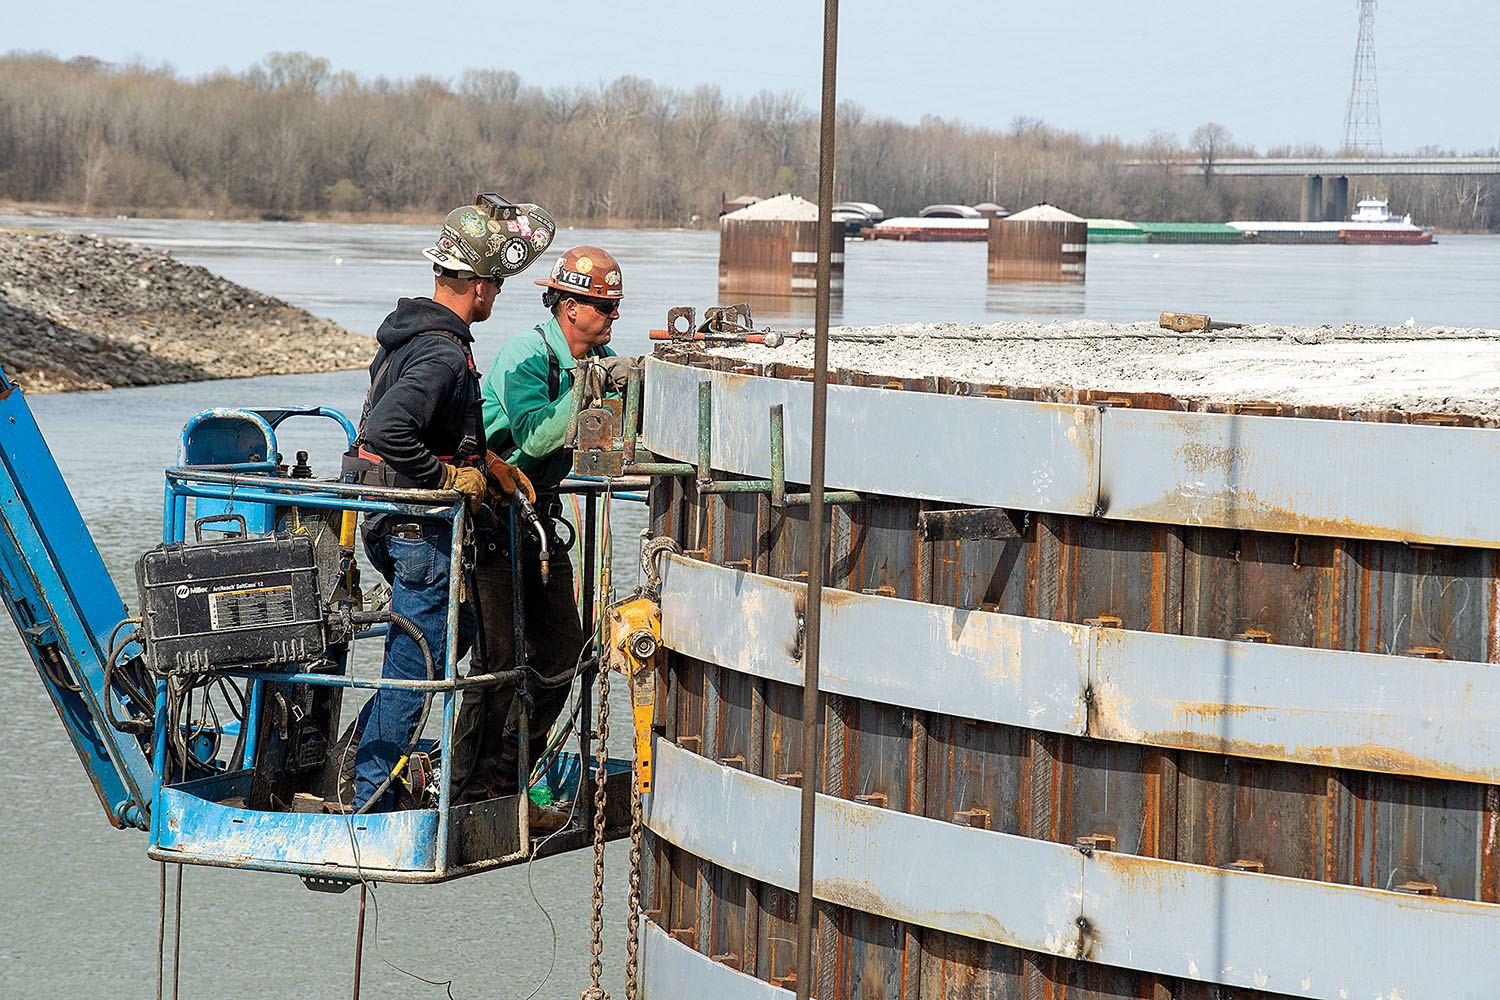 A Johnson Brothers Construction crew performs spot welds March 22, 2021, on a steel sheet pile on the completed cofferdam at the Kentucky Lock Addition Project on the Tennessee River in Grand Rivers, Ky. The Nashville Engineer District is constructing a new 110- by 1,200-foot navigation lock at the Tennessee Valley Authority project. (Photo by Lee Roberts/Nashville Engineer District)